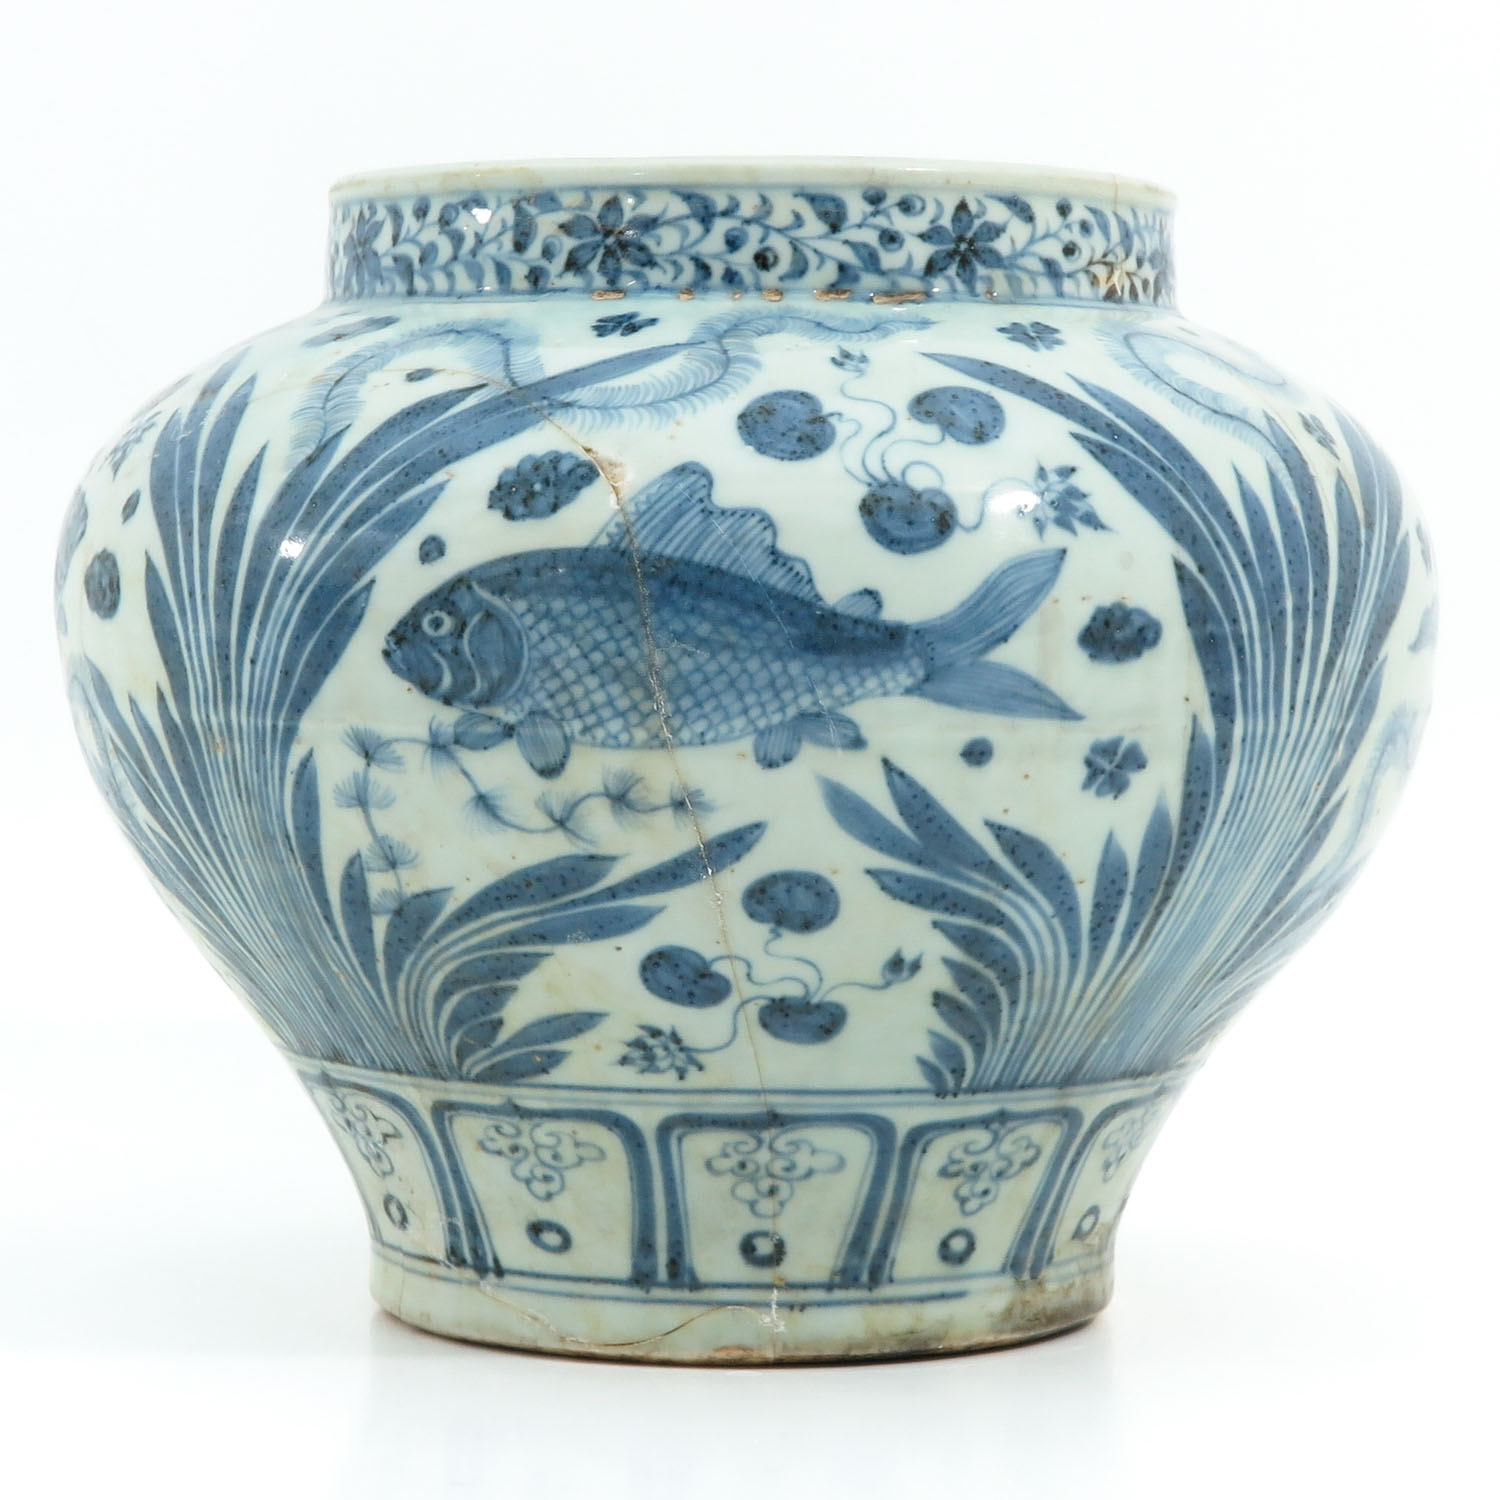 A Blue and White Jar - Image 3 of 9